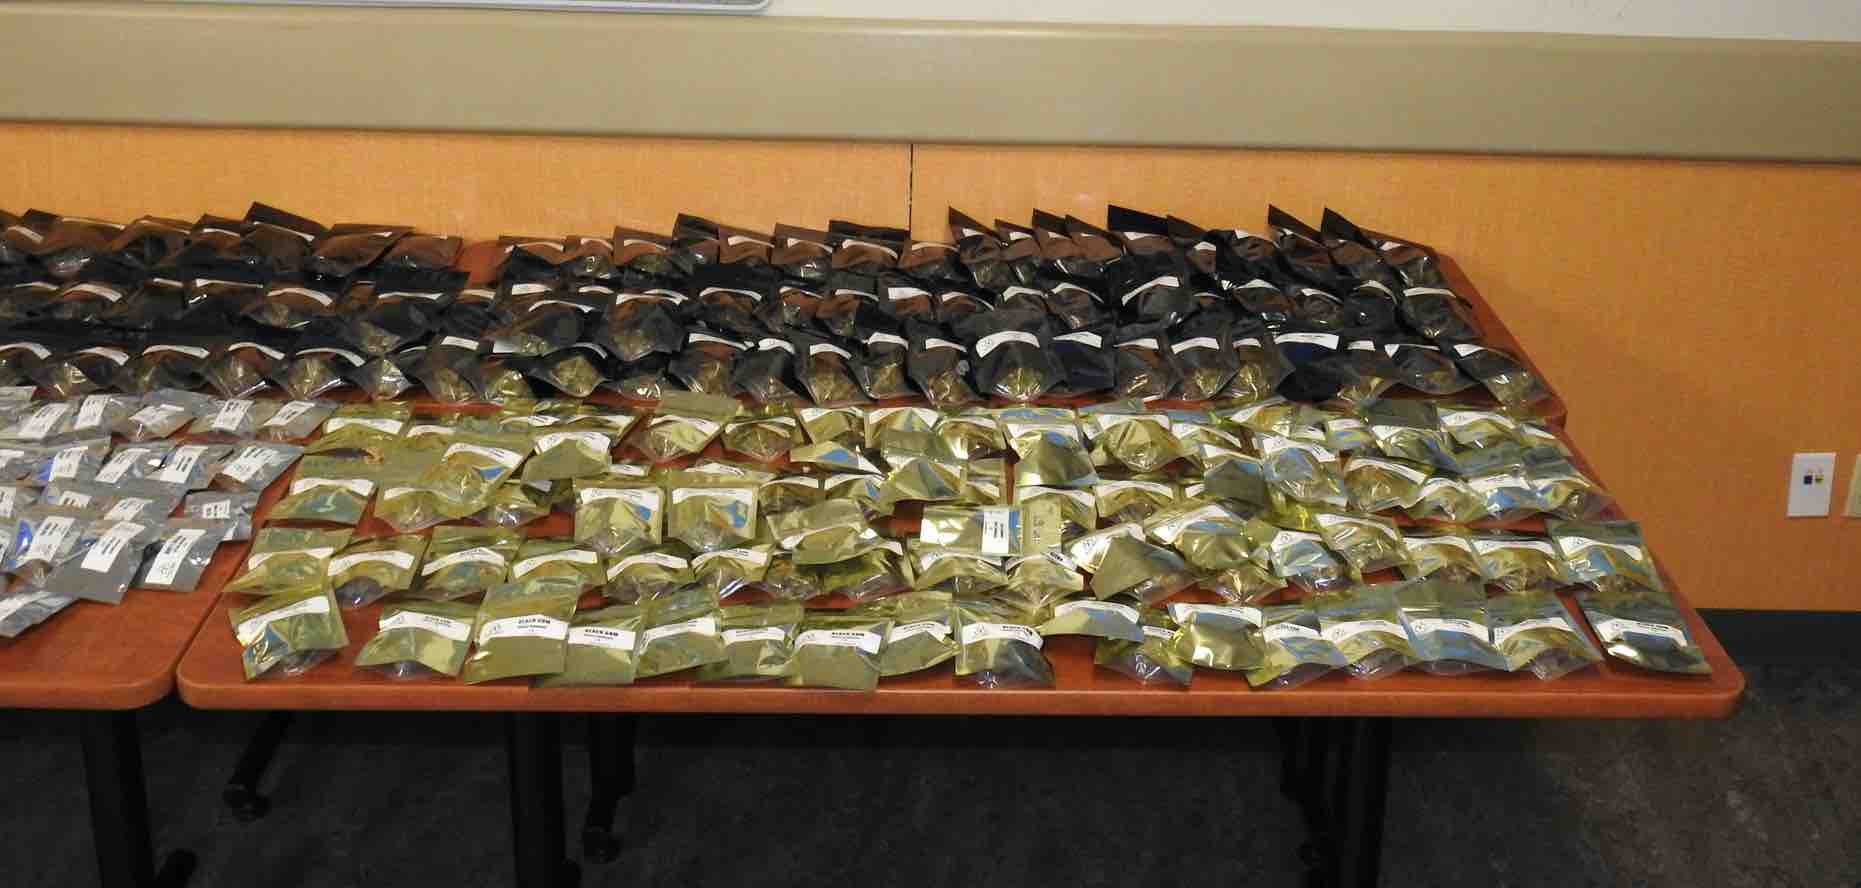 Waterloo police seize over $200,000 in cannabis products